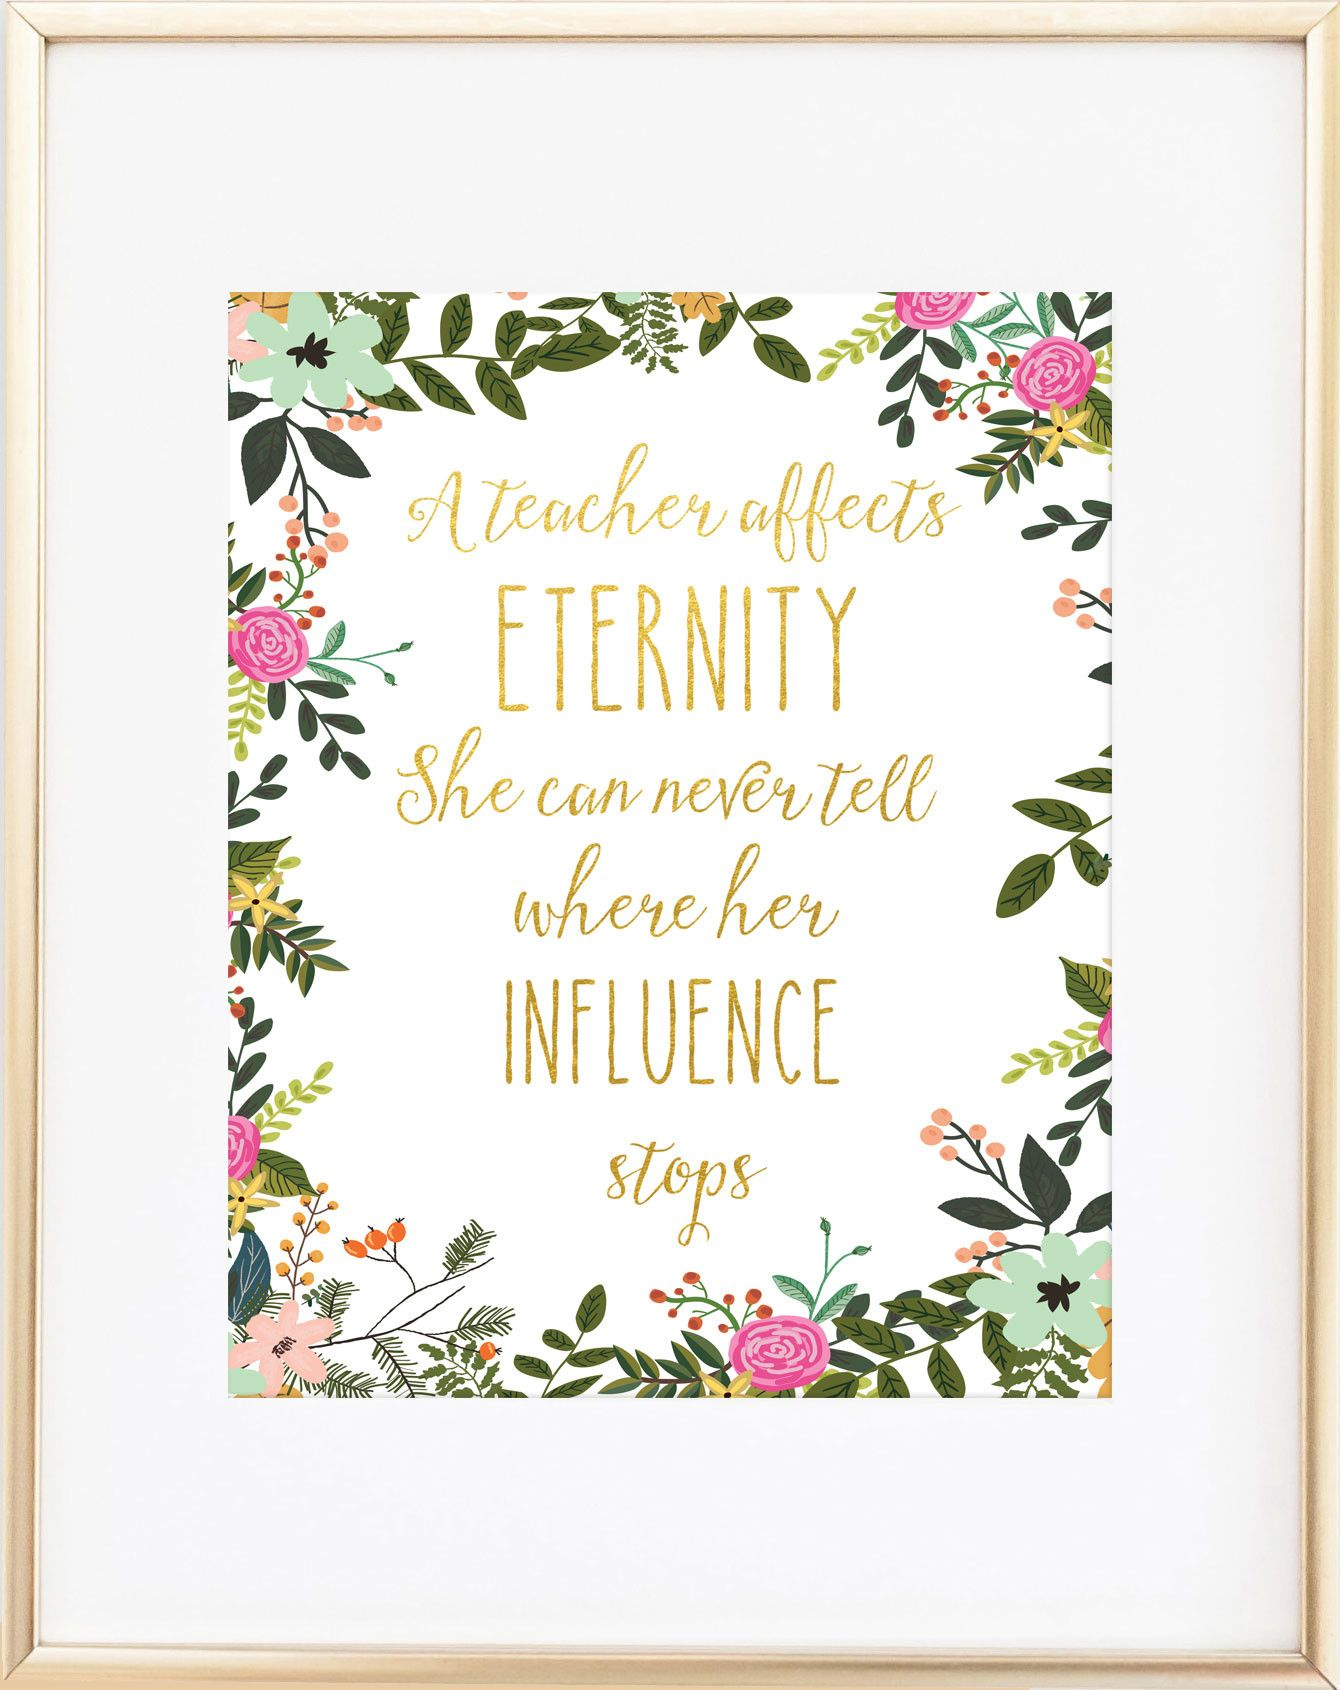 A Teacher Affects Eternity She Can Never Tell Where Her